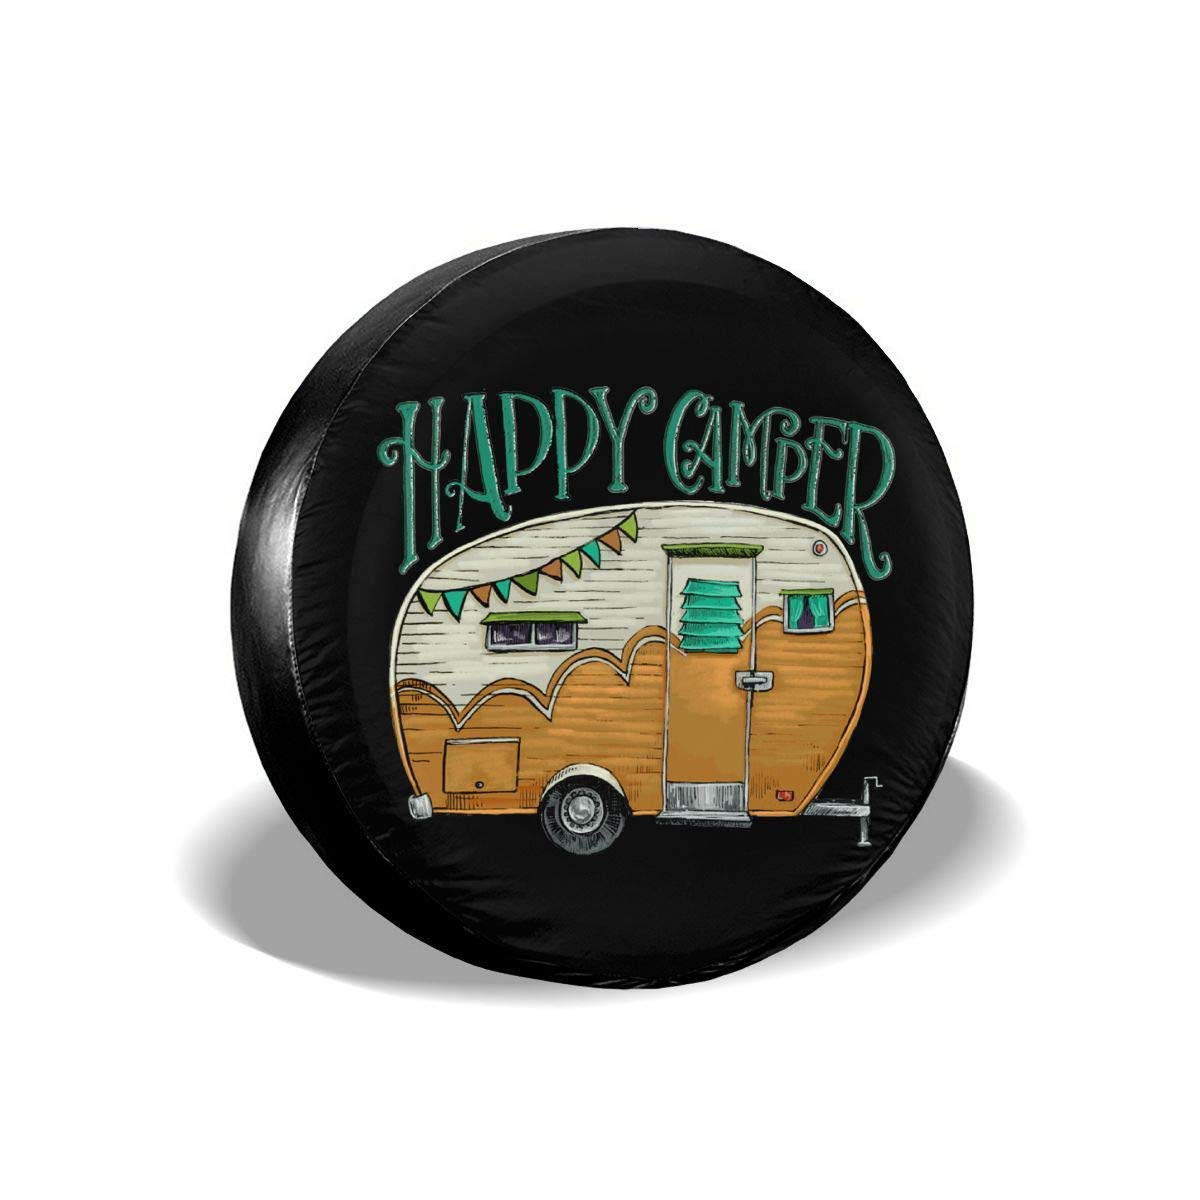 HAINANBOY Happy Camper Spare Tire Covers Potable Corrosion Wheel Covers  Sun-Proof for Jeep Trailer RV SUV Truck Camper Travel Trailer Accessories  14